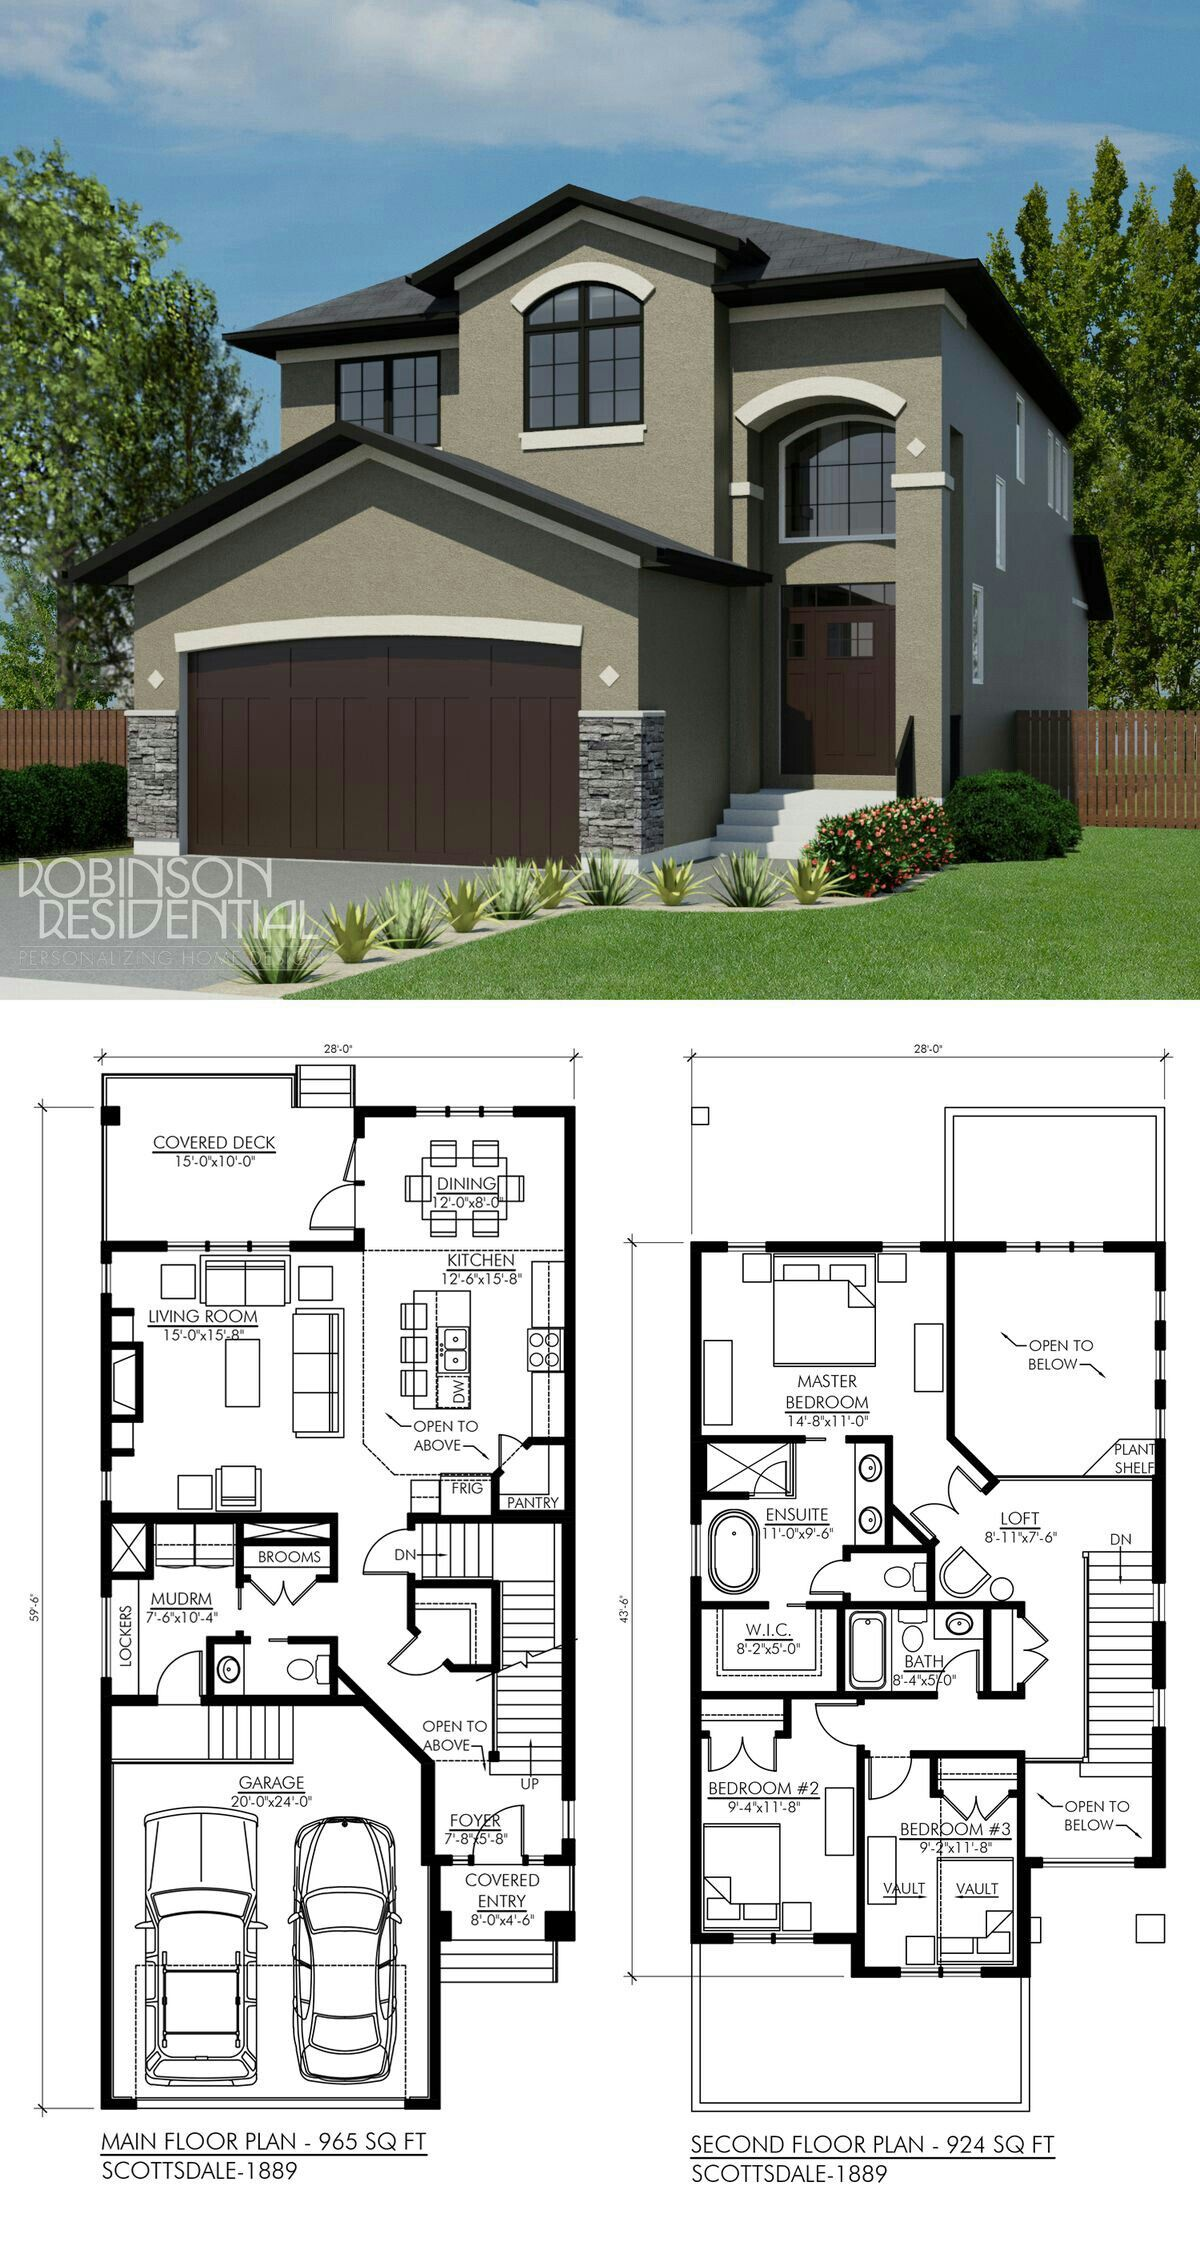 Pin By Patb On Castles Mansions Homes Sims House Plans House Layouts Best House Plans